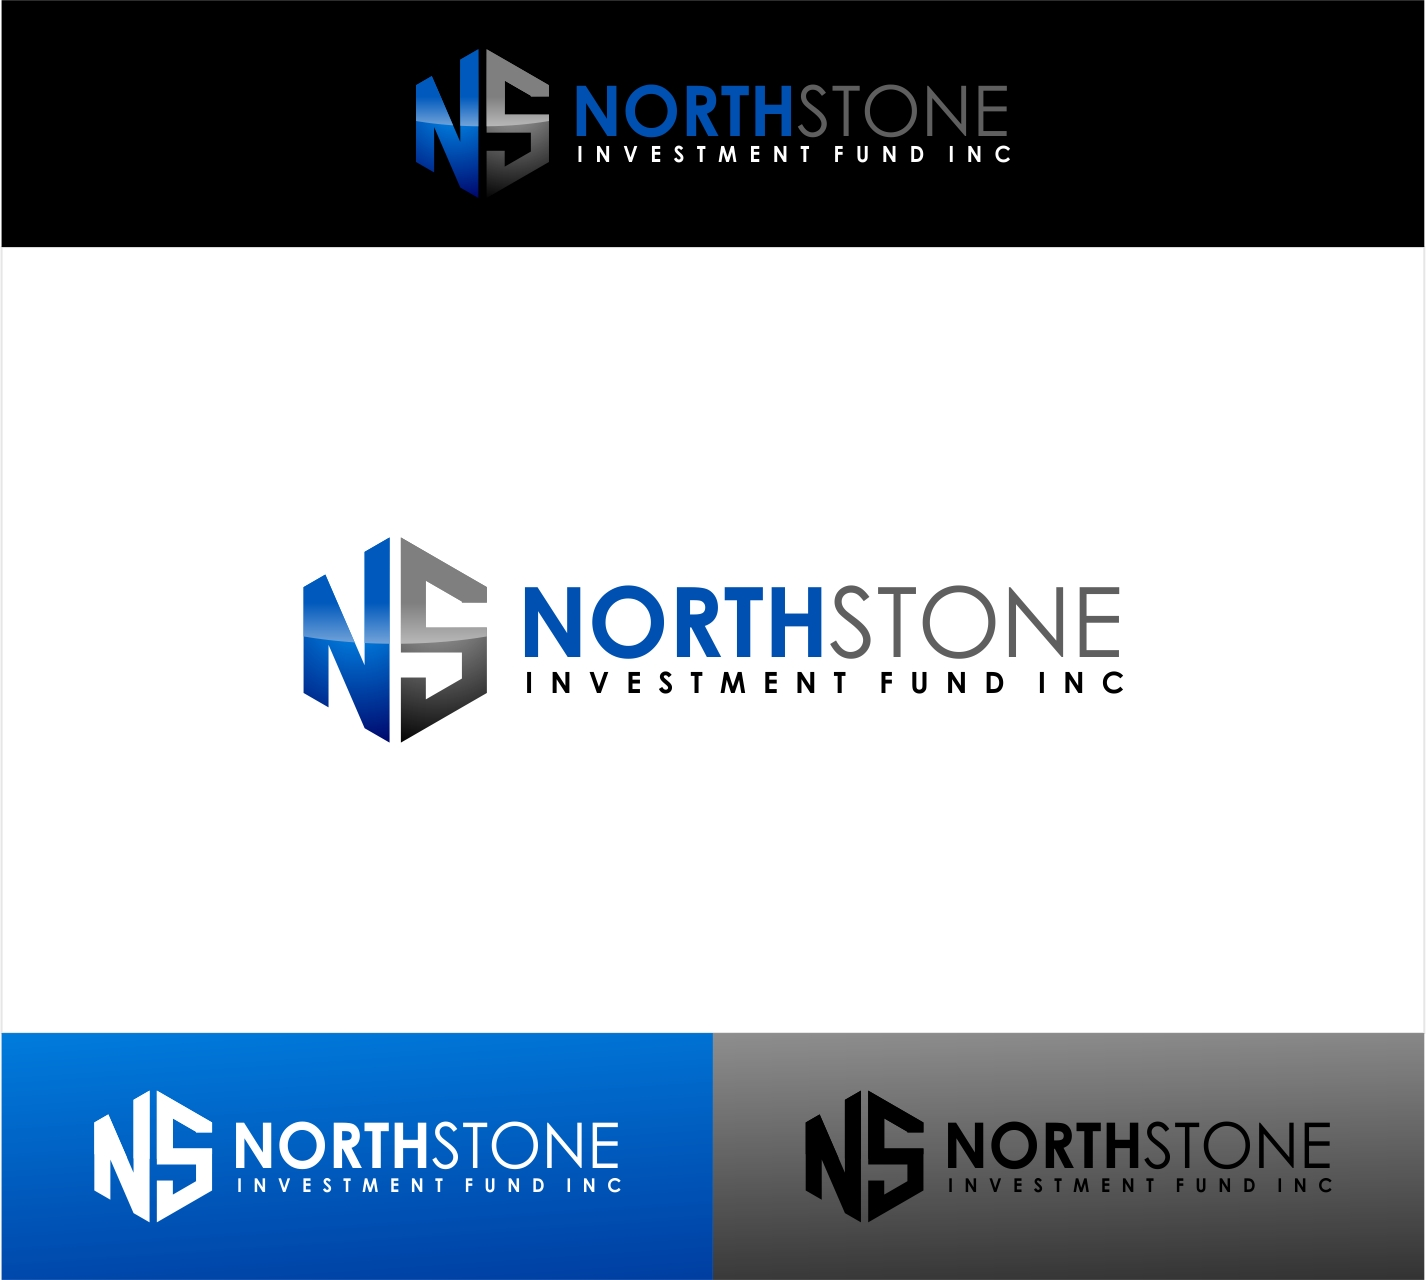 Logo Design by haidu - Entry No. 49 in the Logo Design Contest Unique Logo Design Wanted for NorthStone Investment Fund Inc.